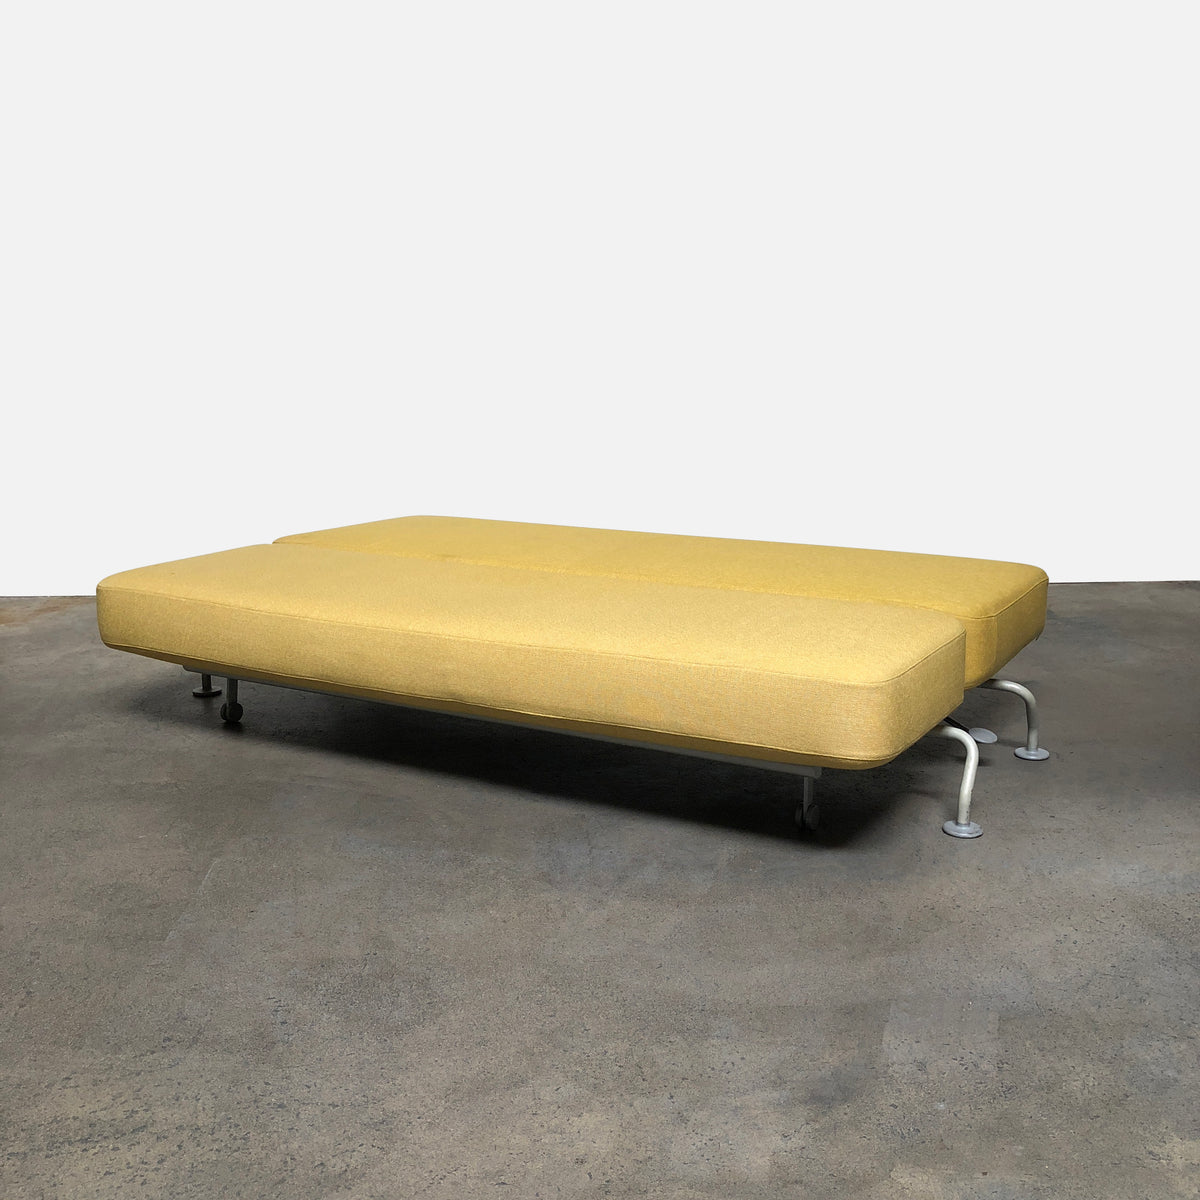 Lunar Sofabed (1 in stock)